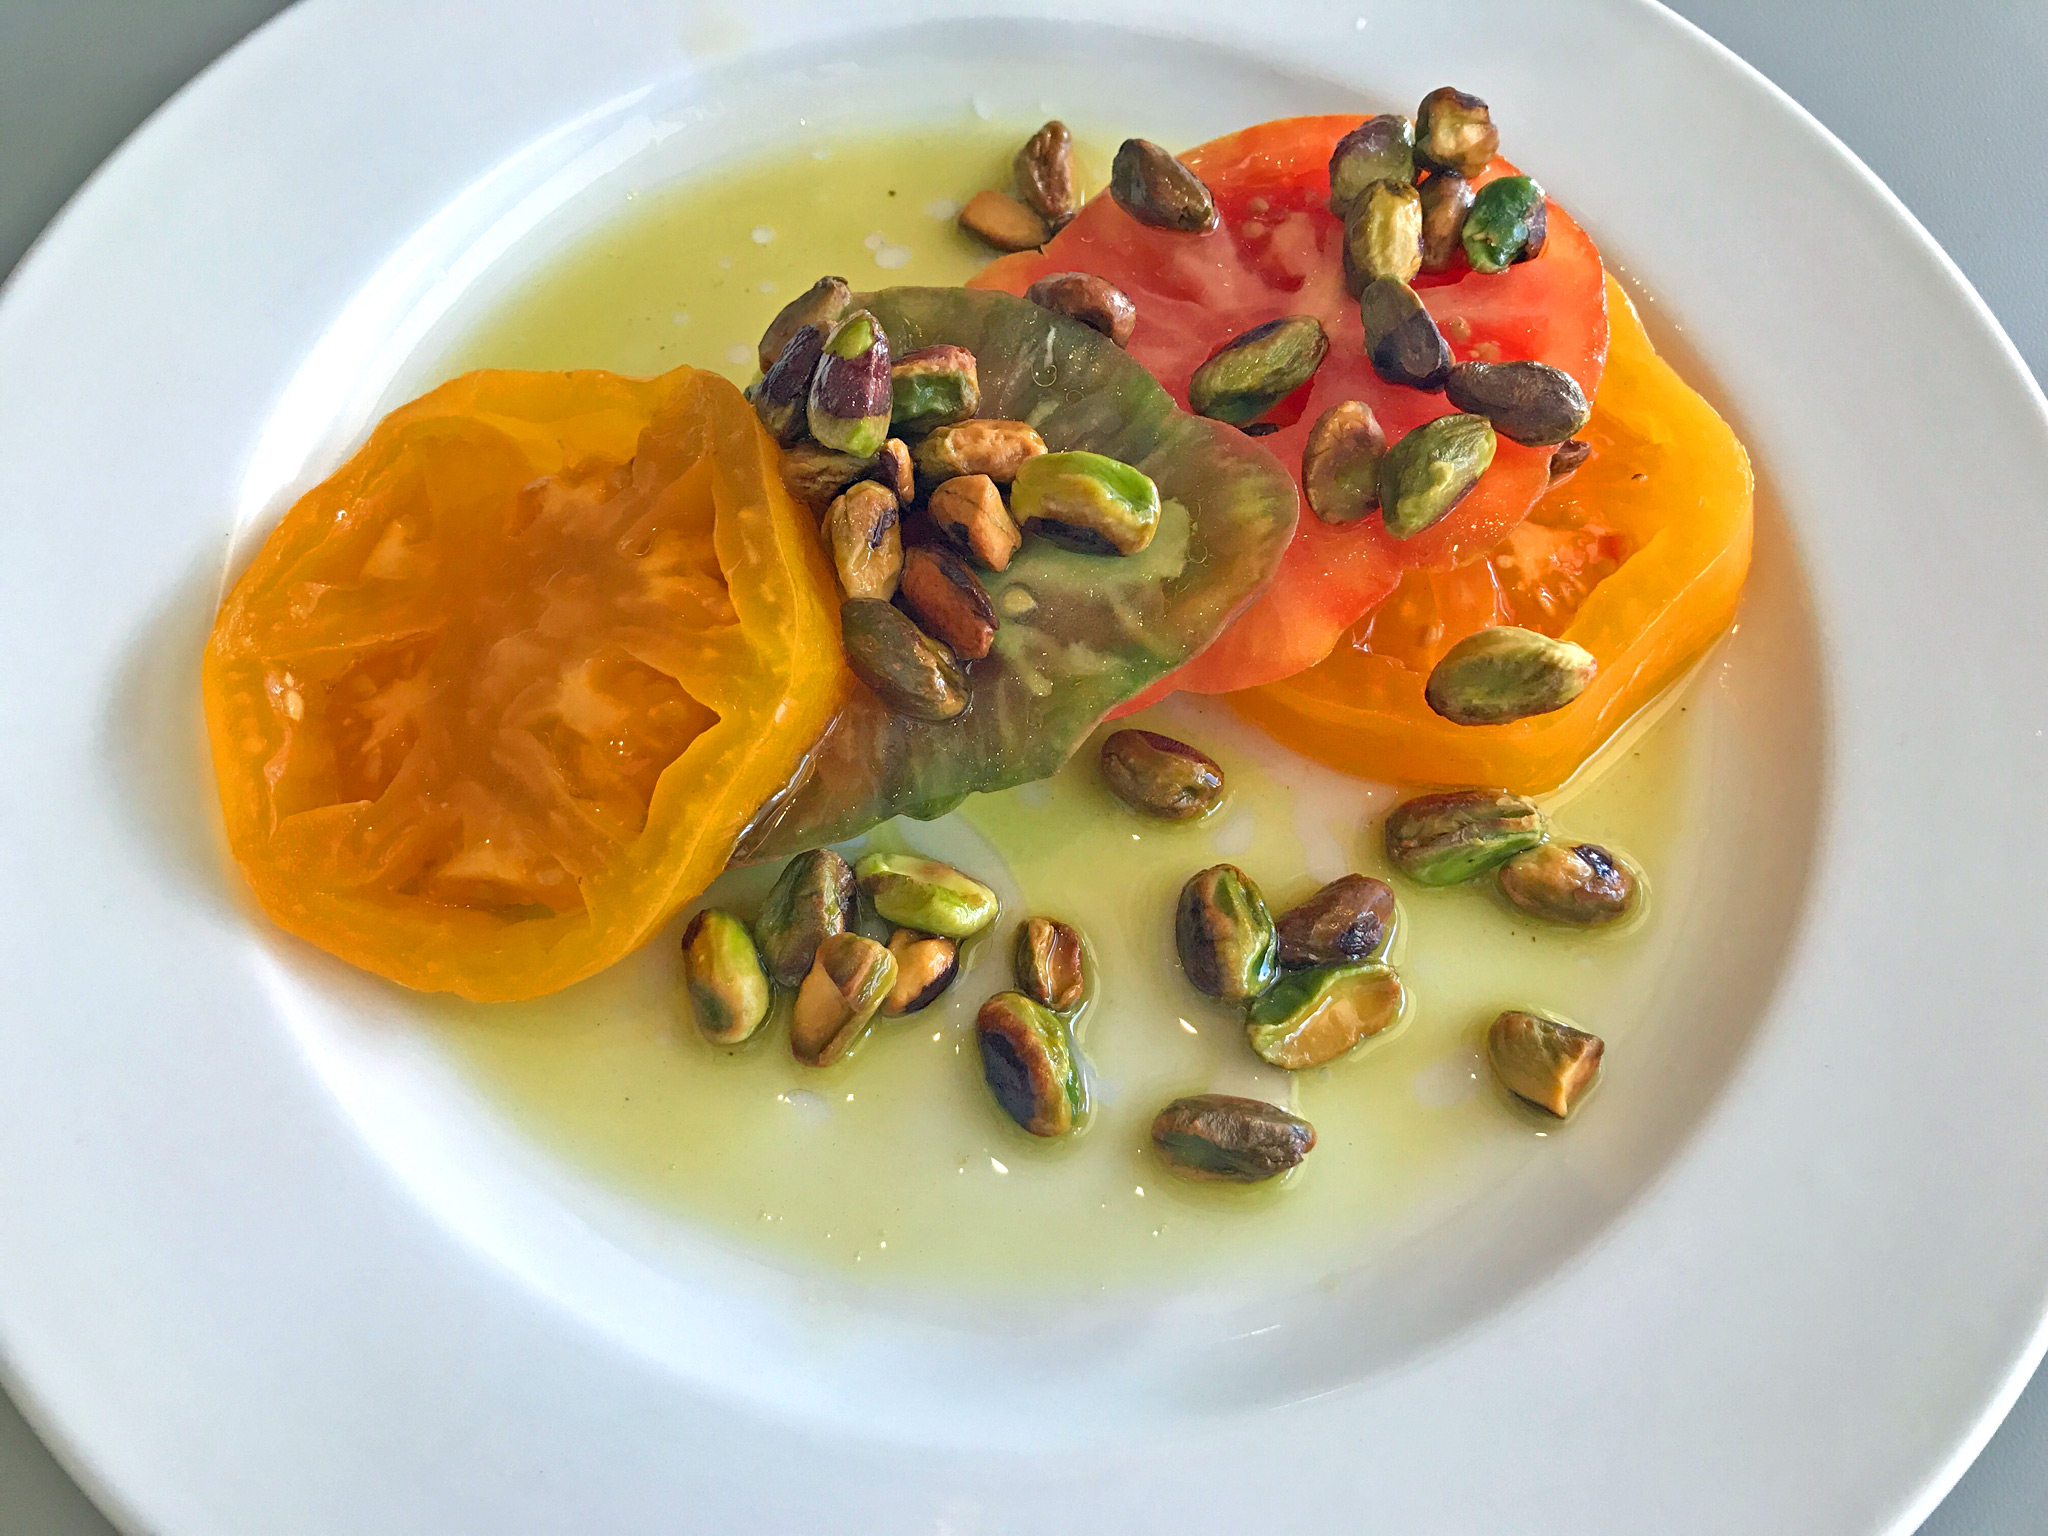 Salt & Sugar Cured Heirloom Tomatoes - fried pistachios, extra virgin olive oil, orange blossom water.